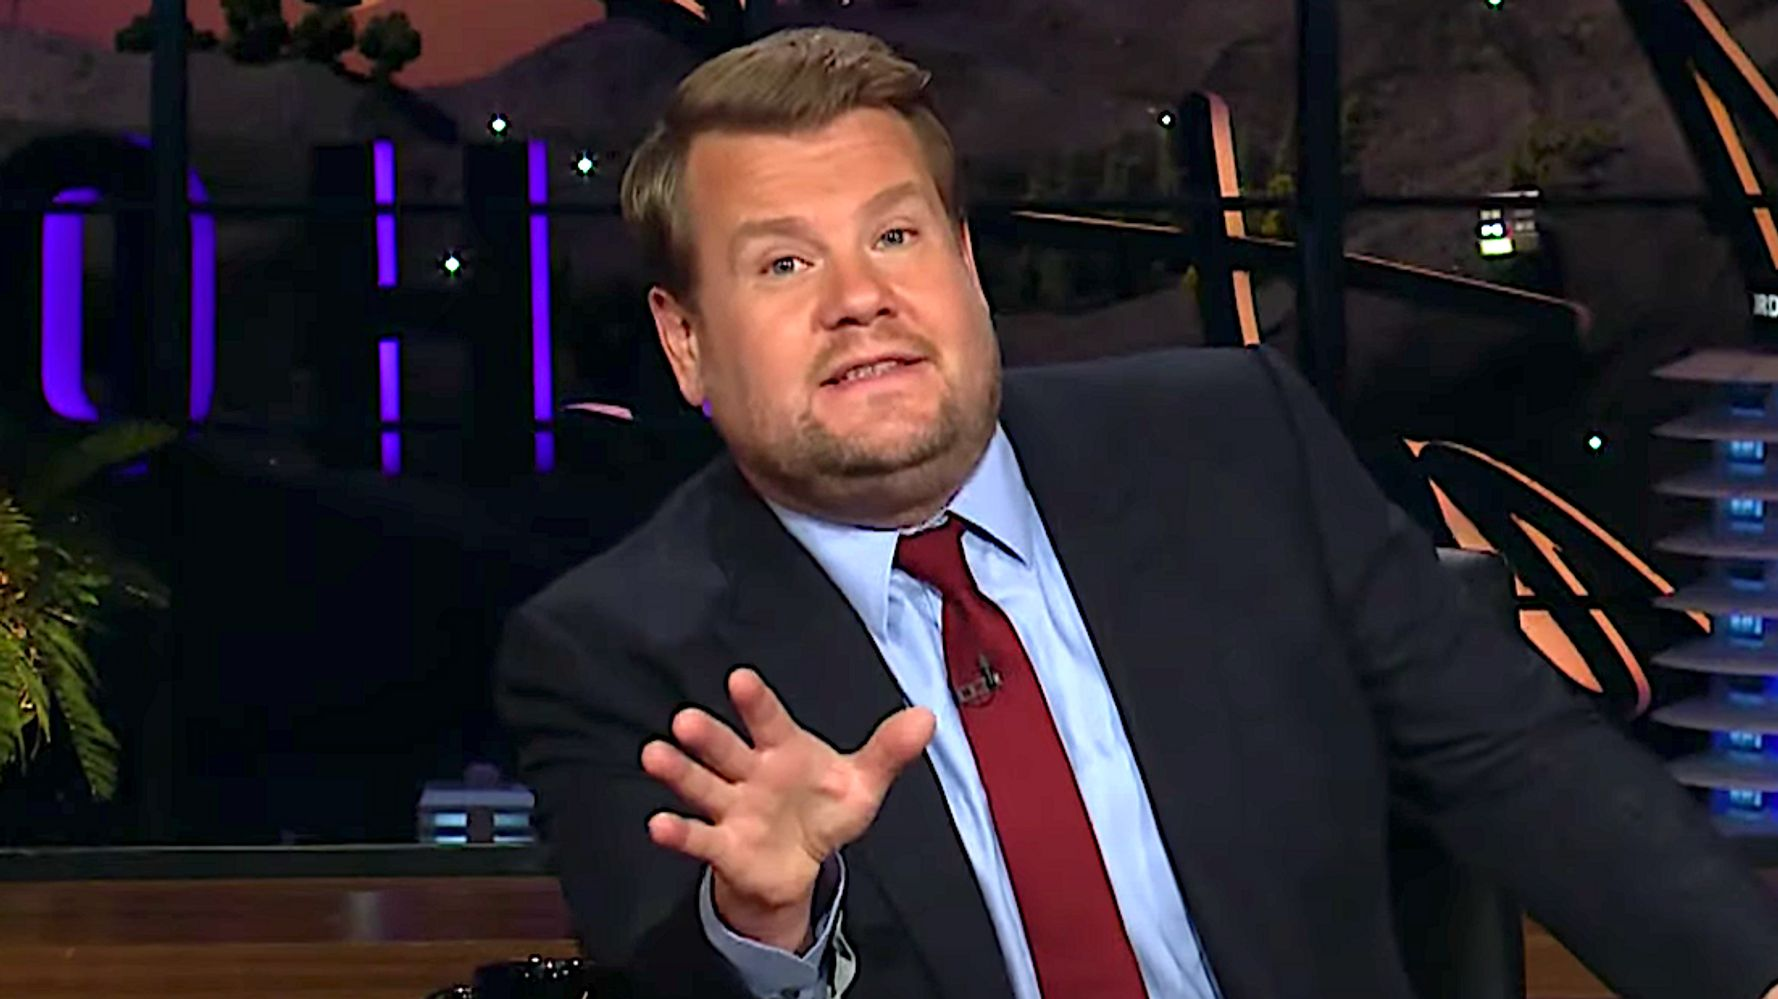 James Corden Zings Nevada For Taking So Long To Count Votes